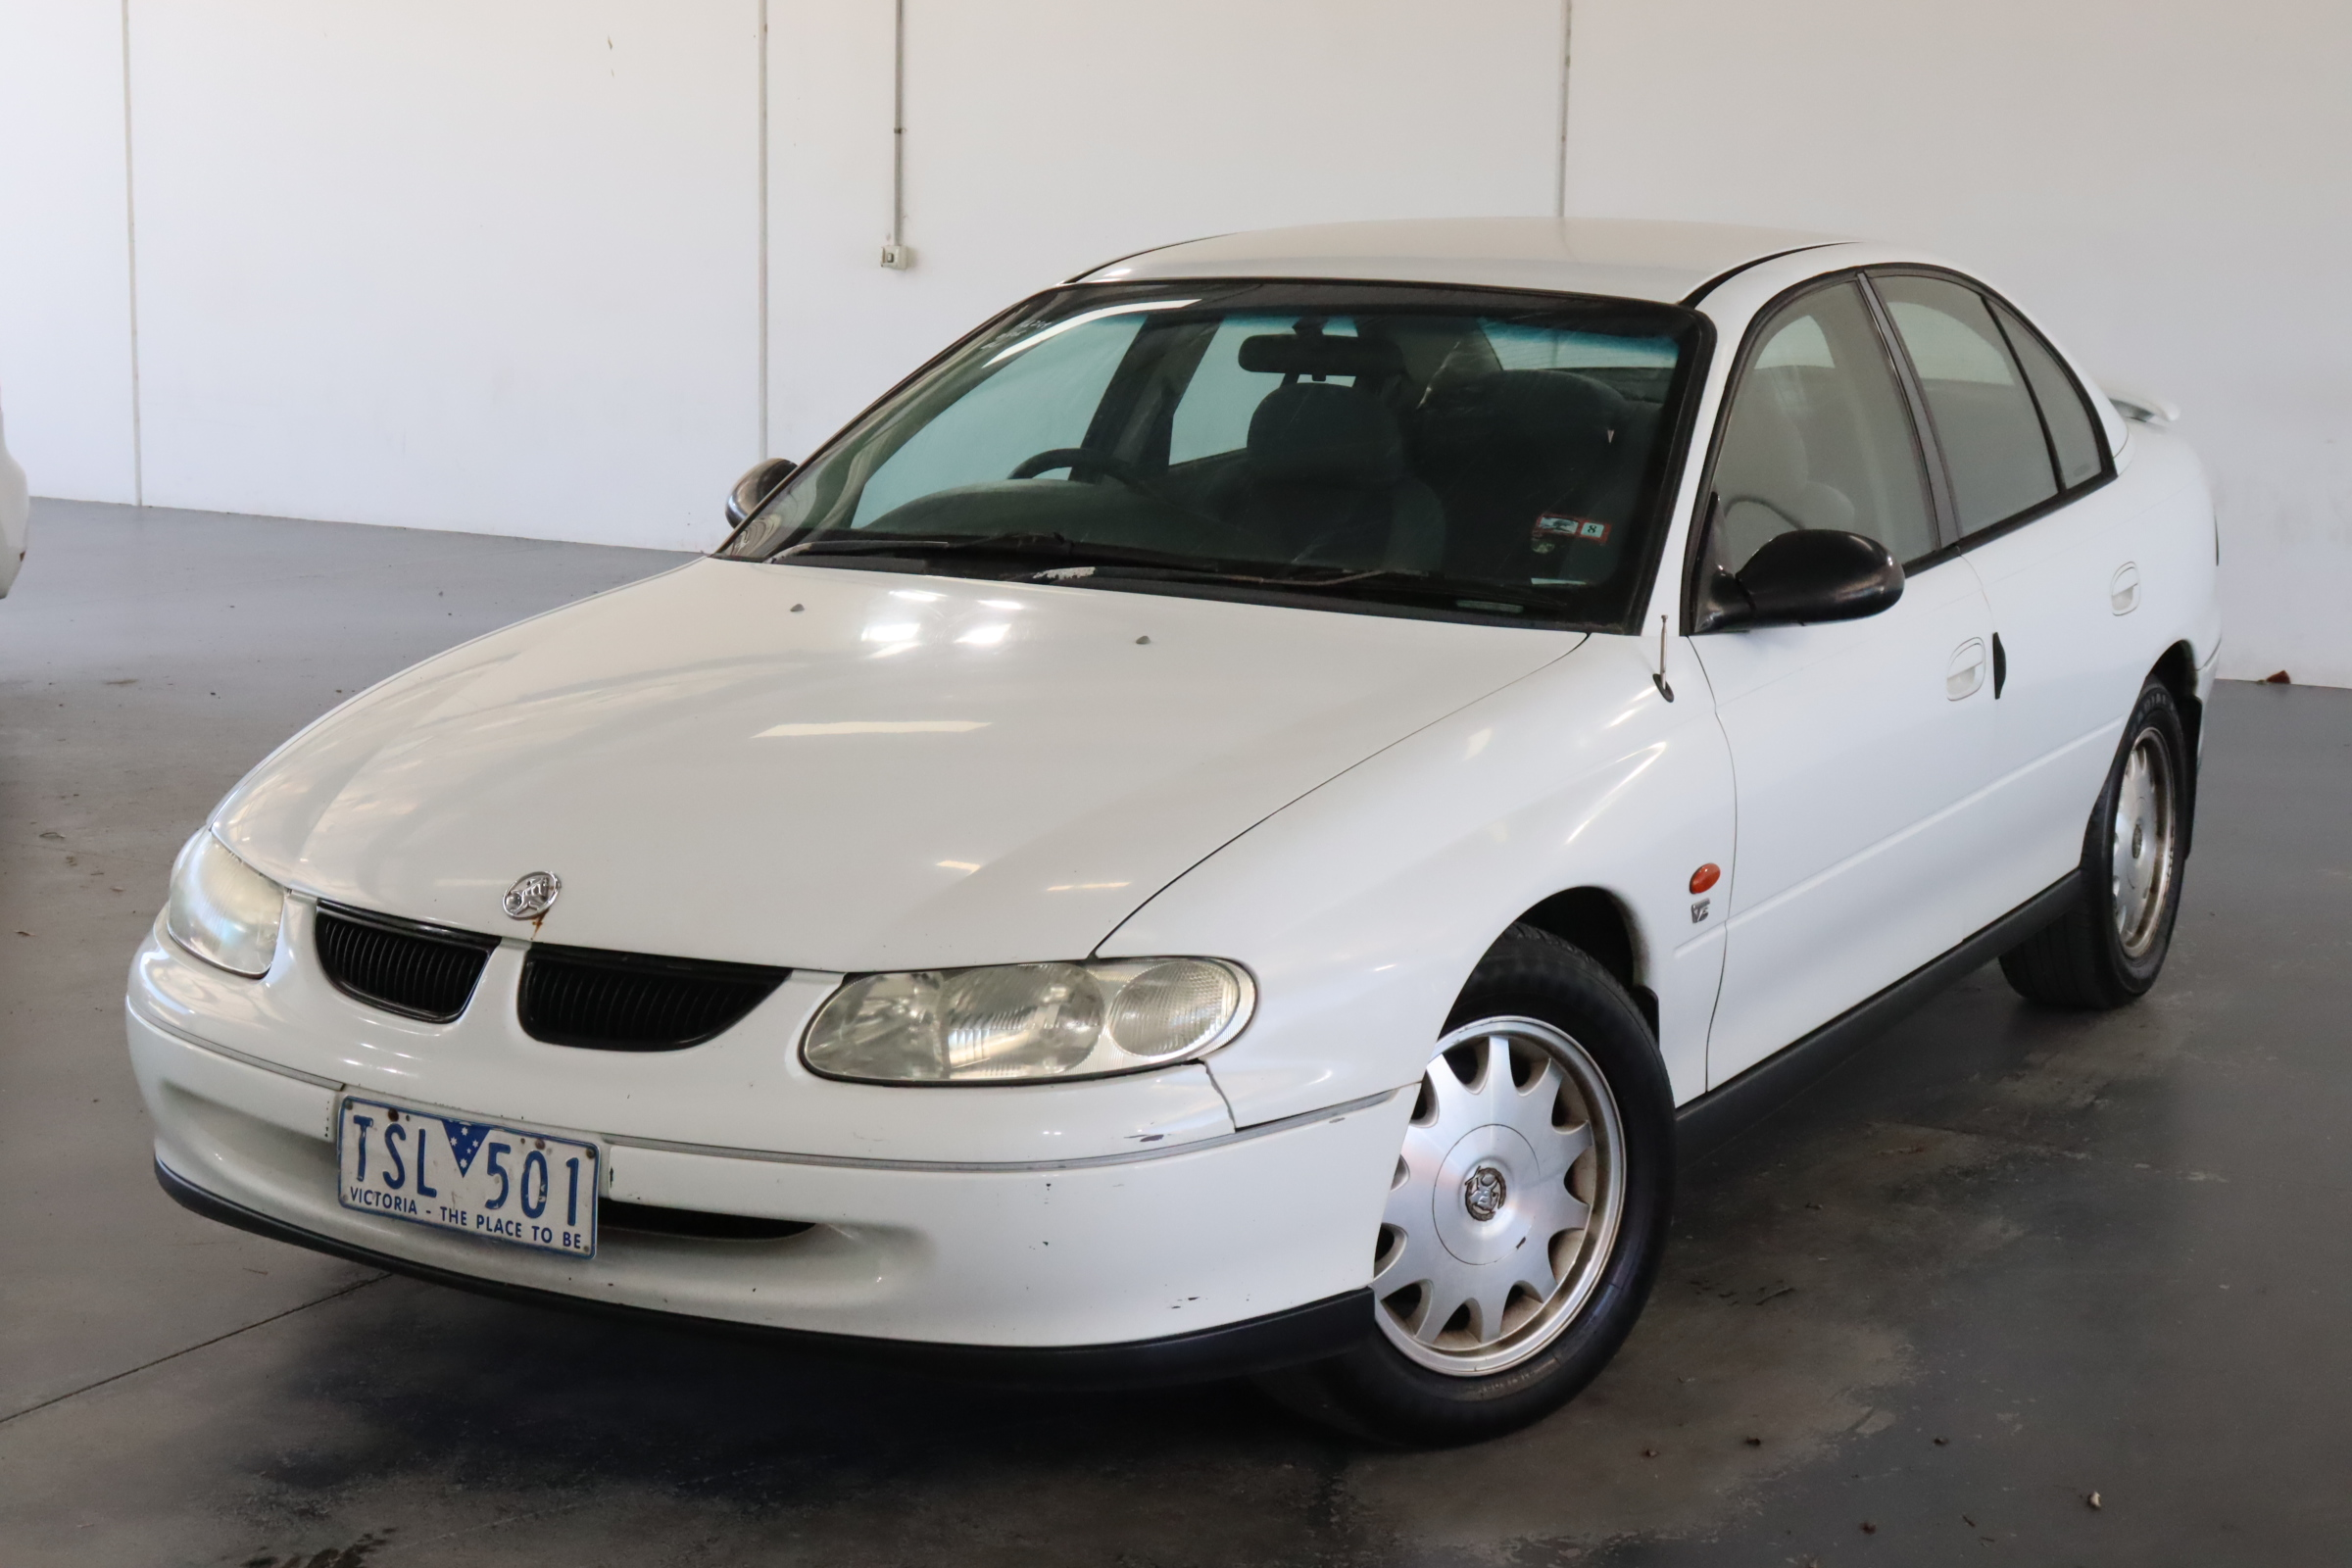 1998 Holden Commodore 50 Anniversary Edition VT Automatic Sedan